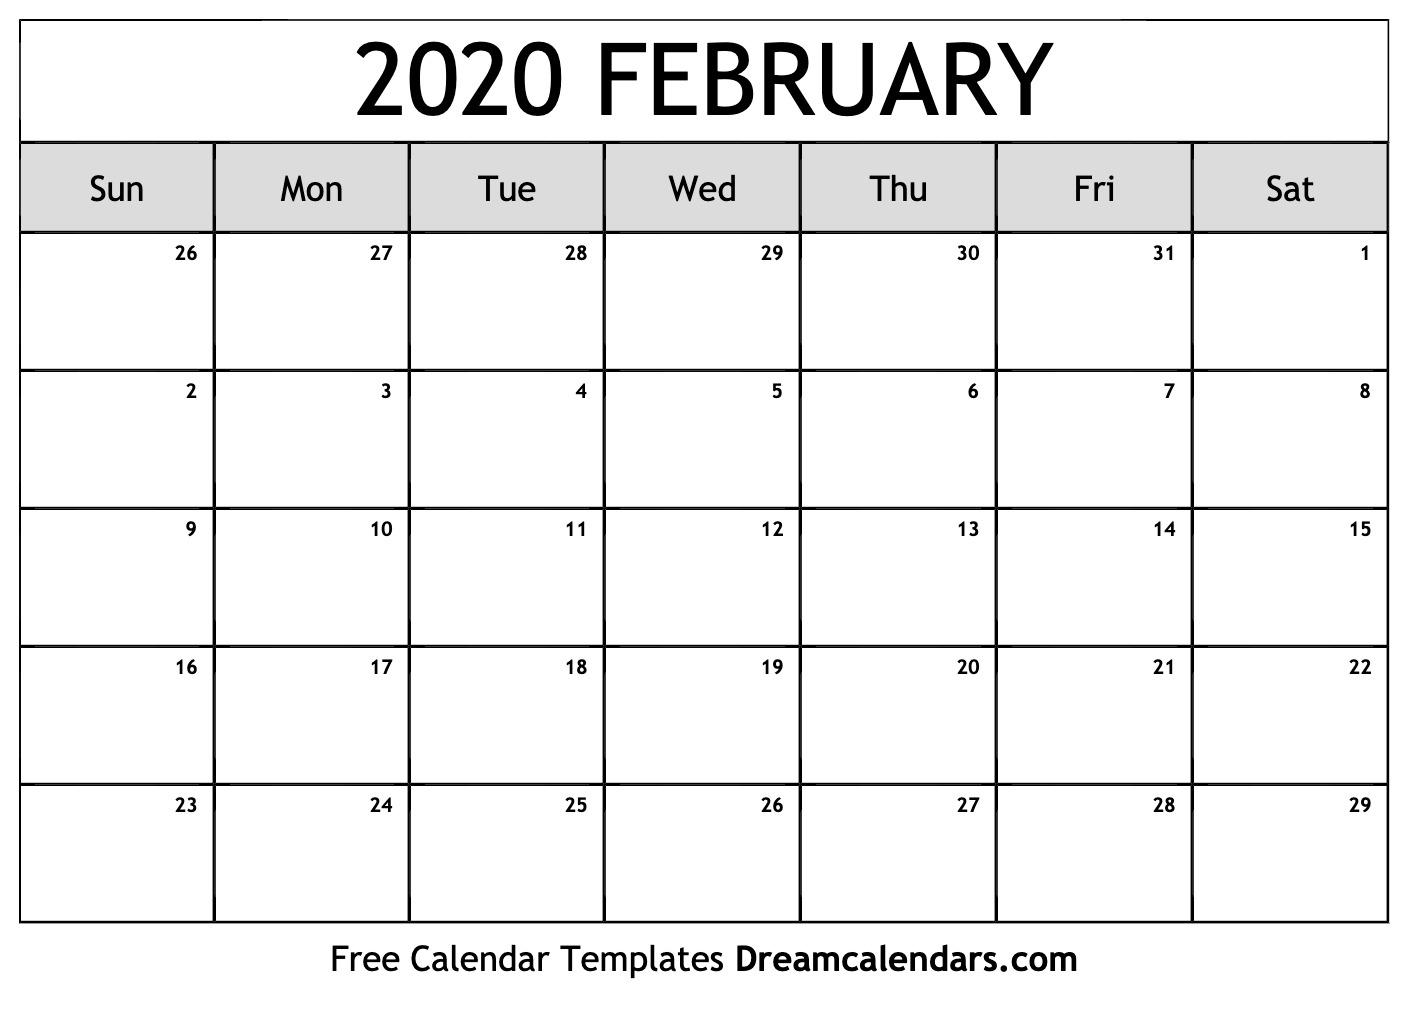 Free February 2020 Printable Calendar | Dream Calendars